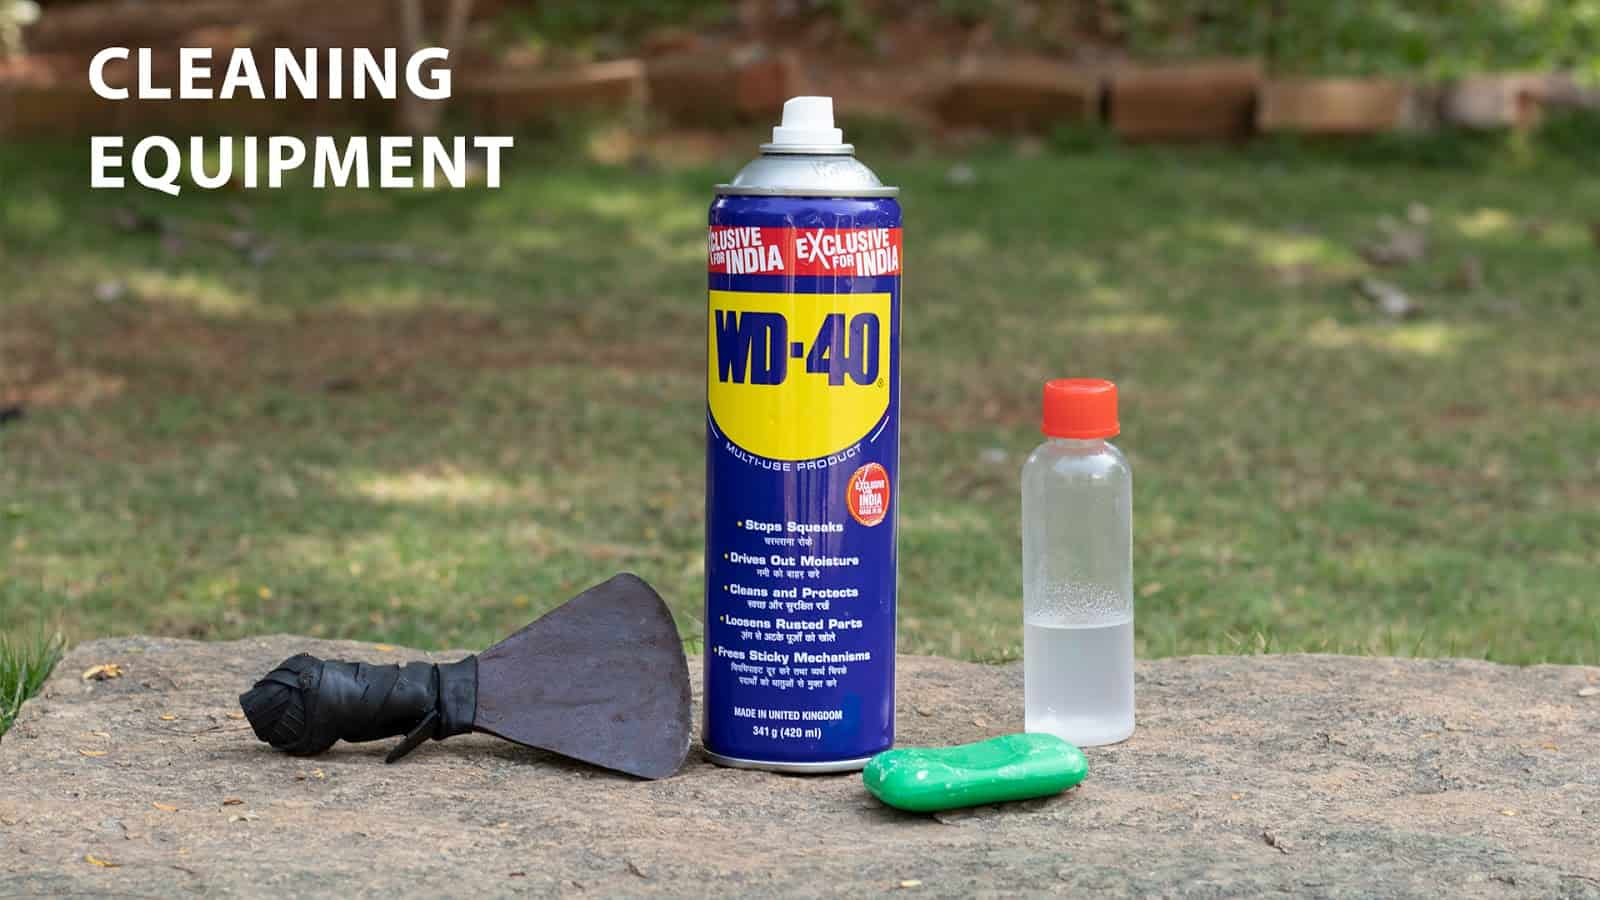 cleaning paintbrush using WD40